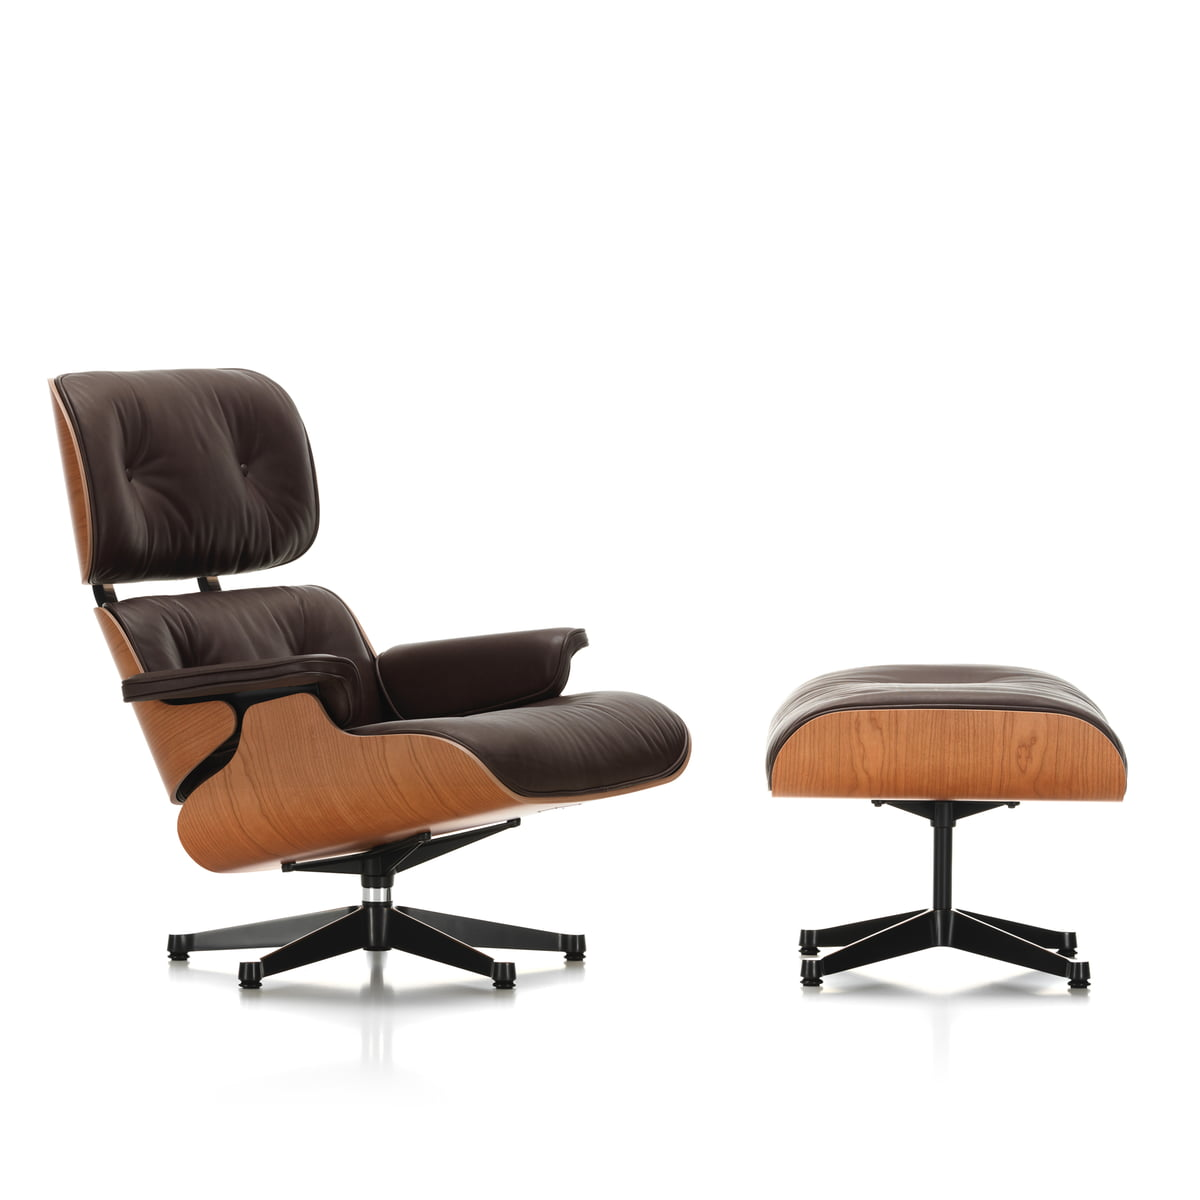 vitra lounge chair ottoman kirschbaum. Black Bedroom Furniture Sets. Home Design Ideas